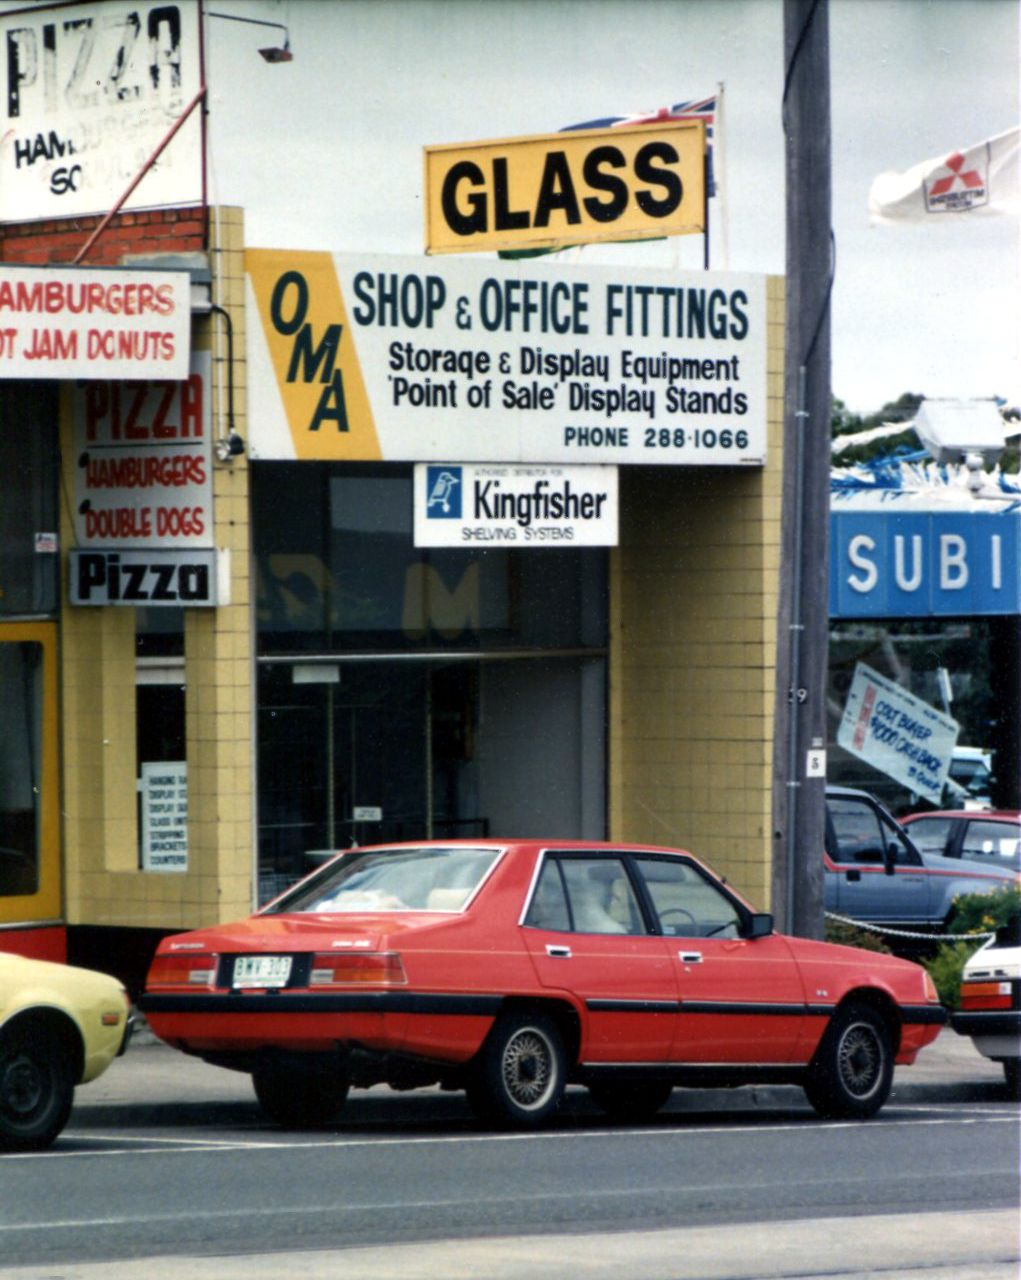 Our first store at 39 Burwood Highway Burwood in December 1987